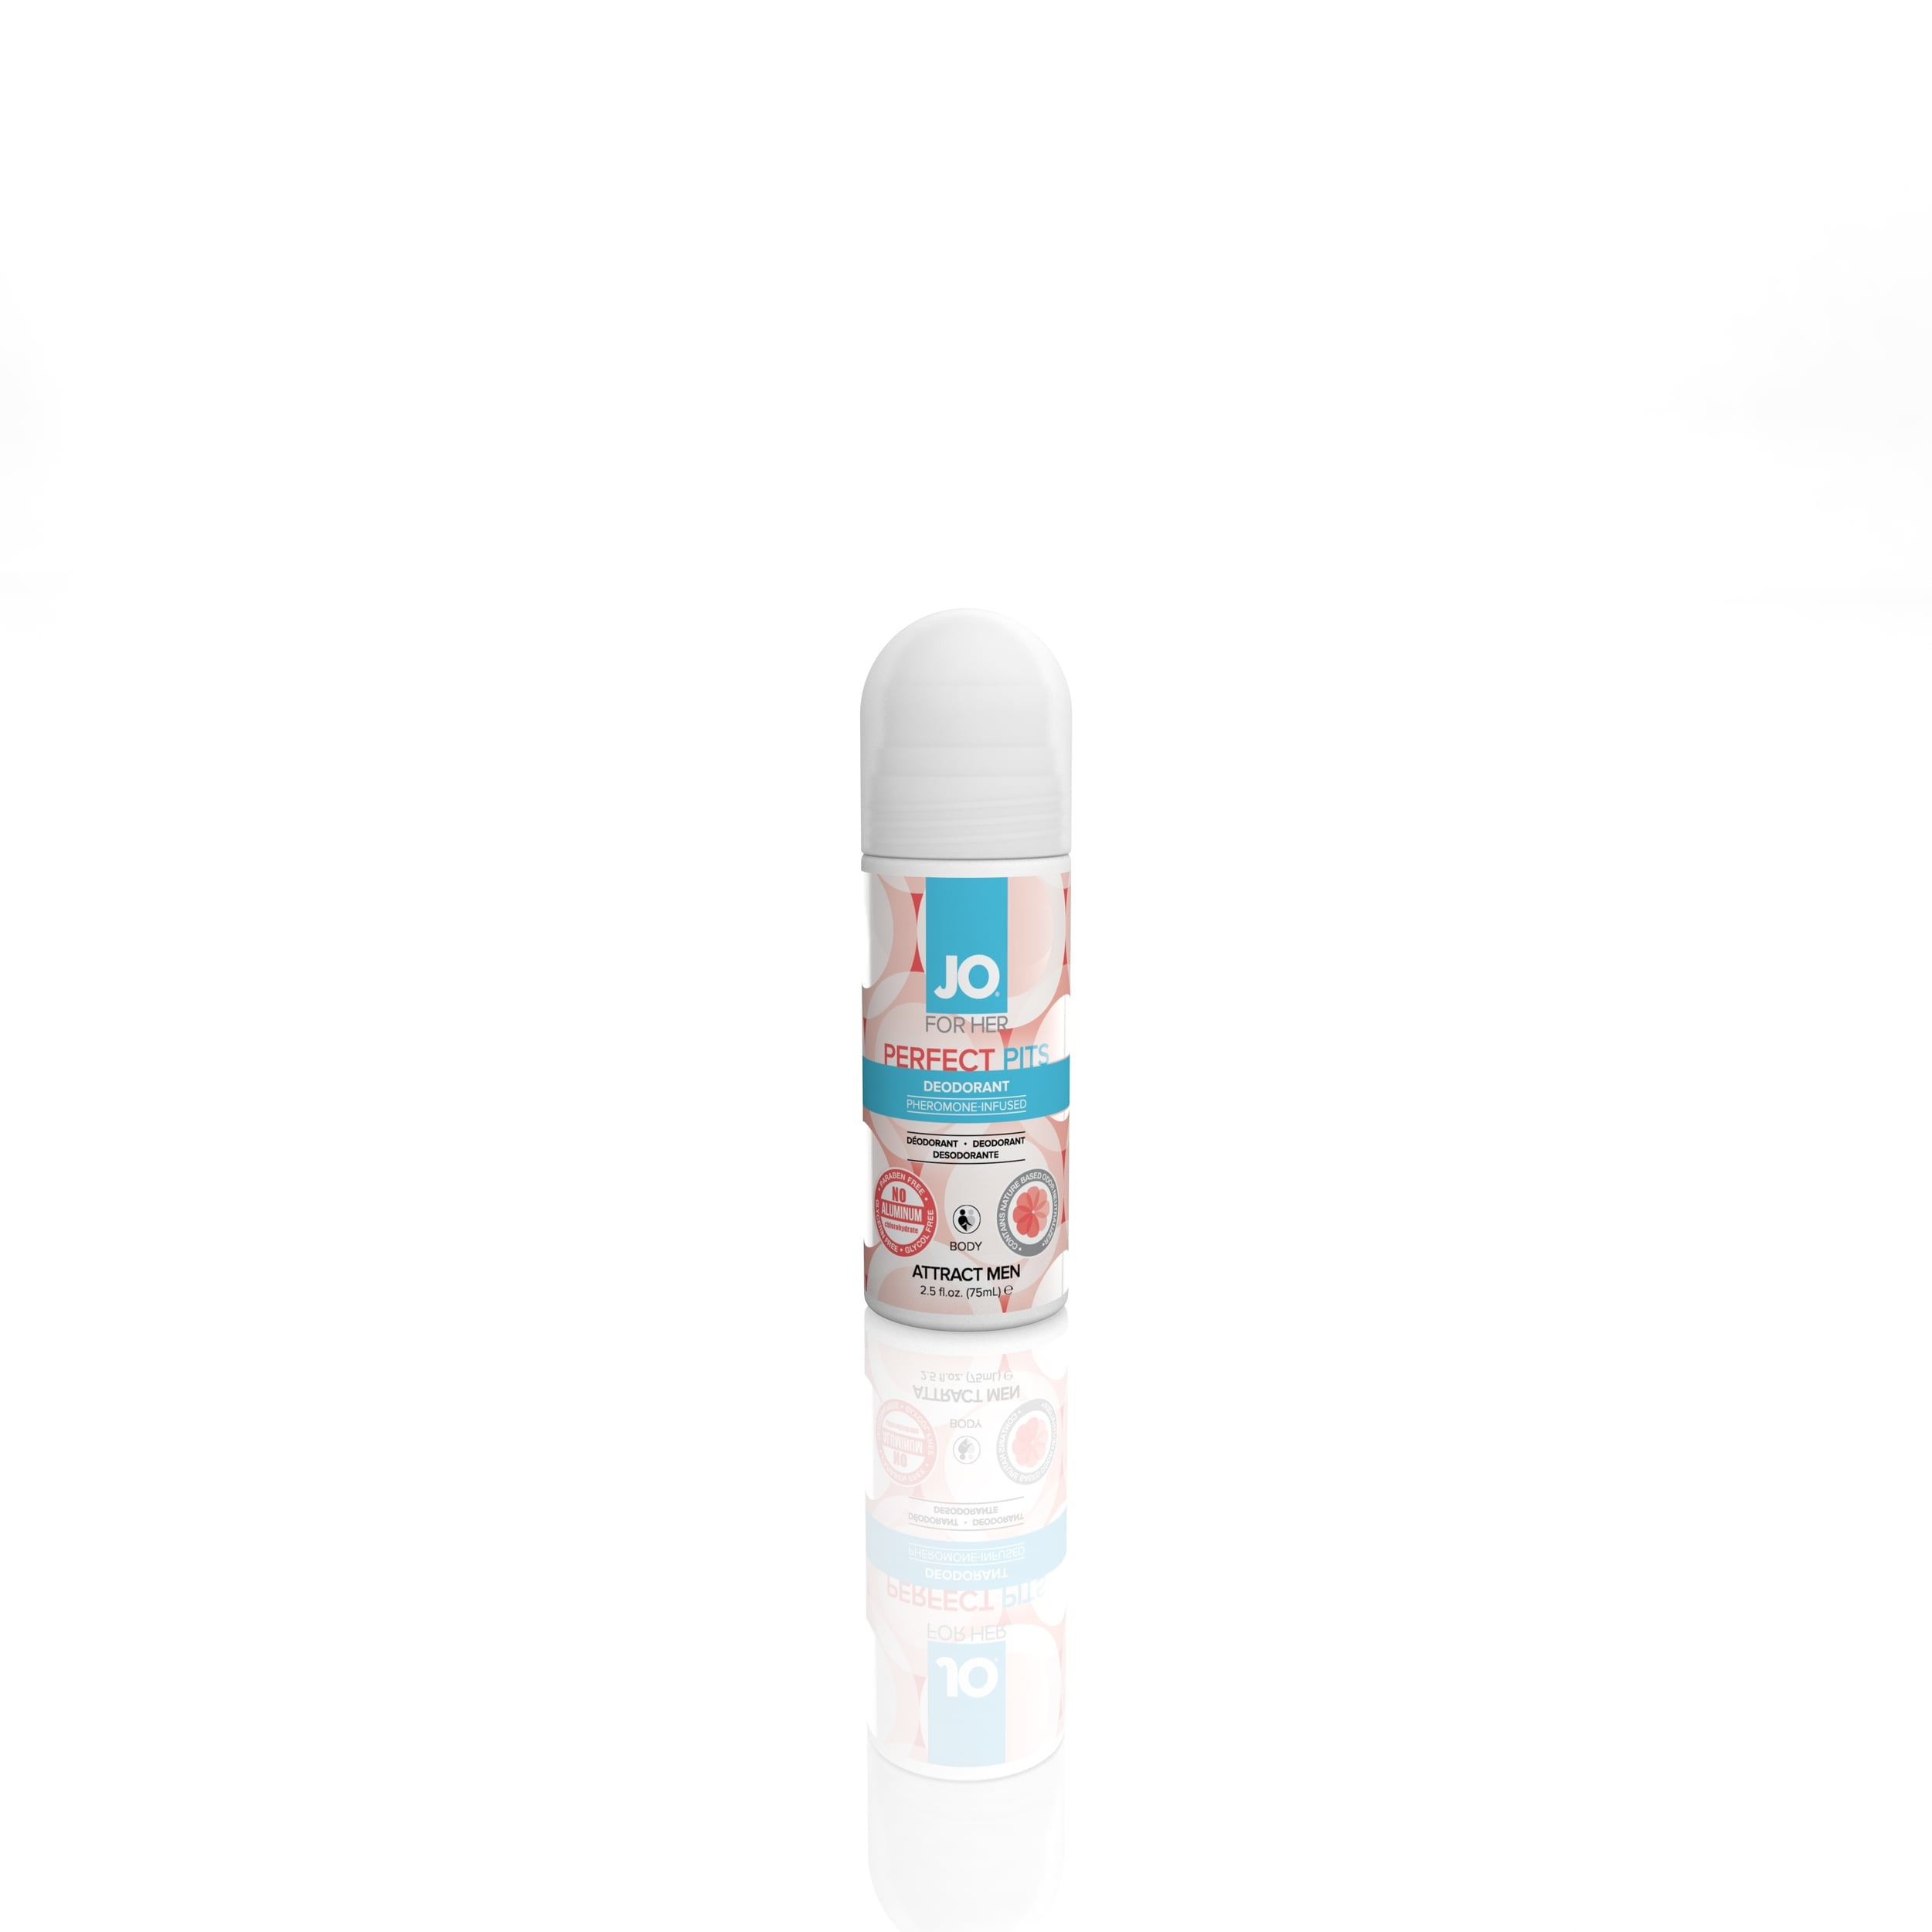 40212 - JO PERFECT PITS - DEODORANT WITH PHEROMONES - FOR HER - 2.5oz.jpg